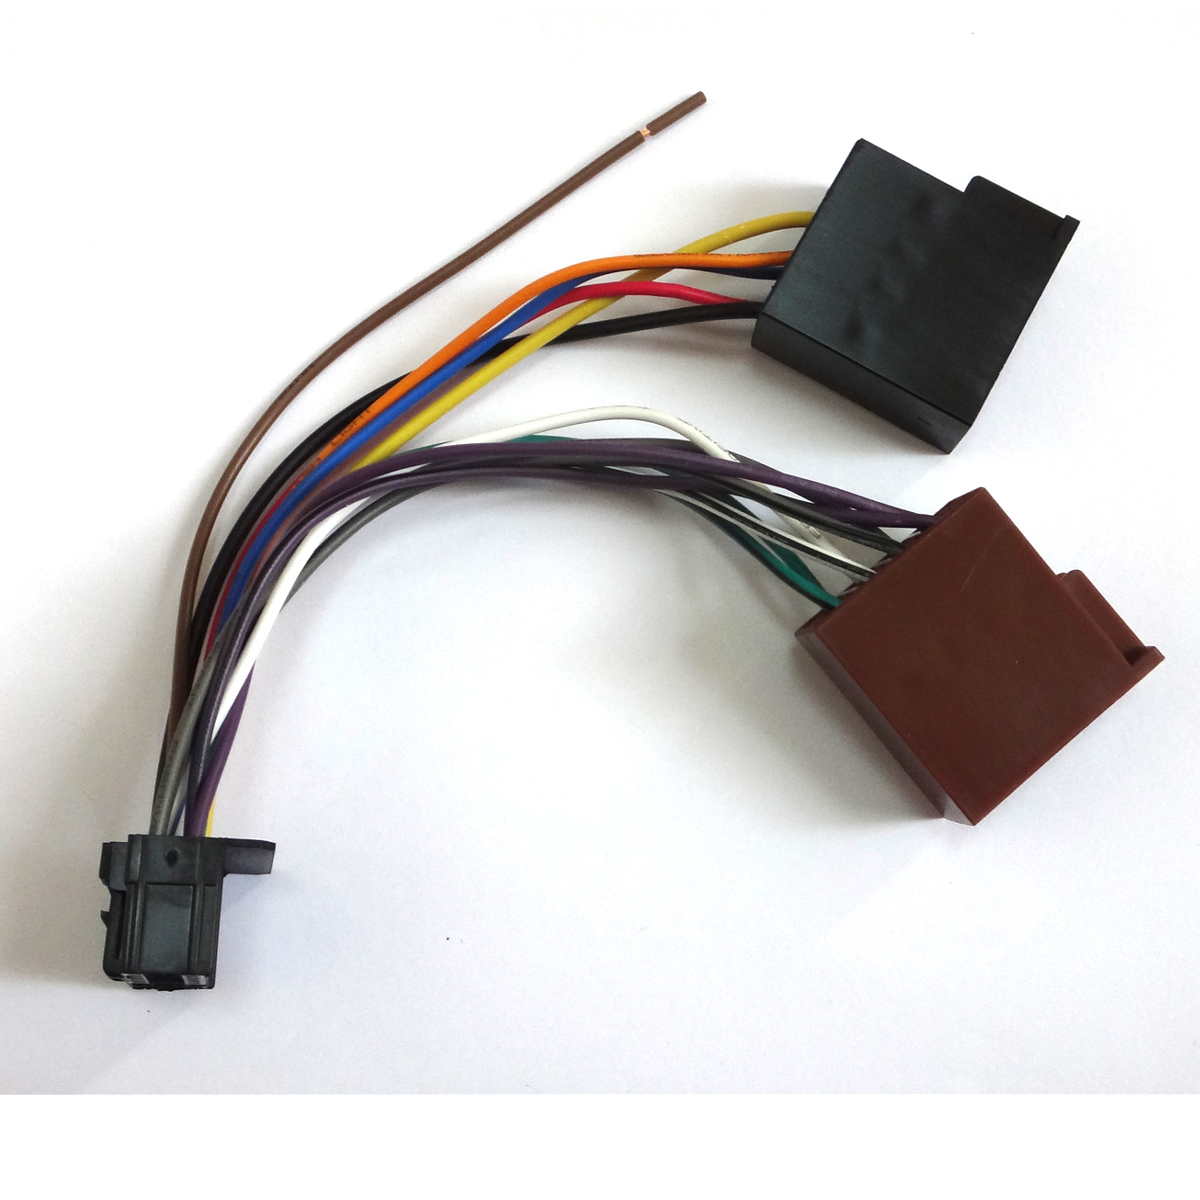 pioneer wire harness car radio p5530mp p5800mp p5900mp p6500mp p6530mp p6700mp in vehicle gps from automobiles motorcycles on aliexpress com alibaba  [ 1200 x 1200 Pixel ]